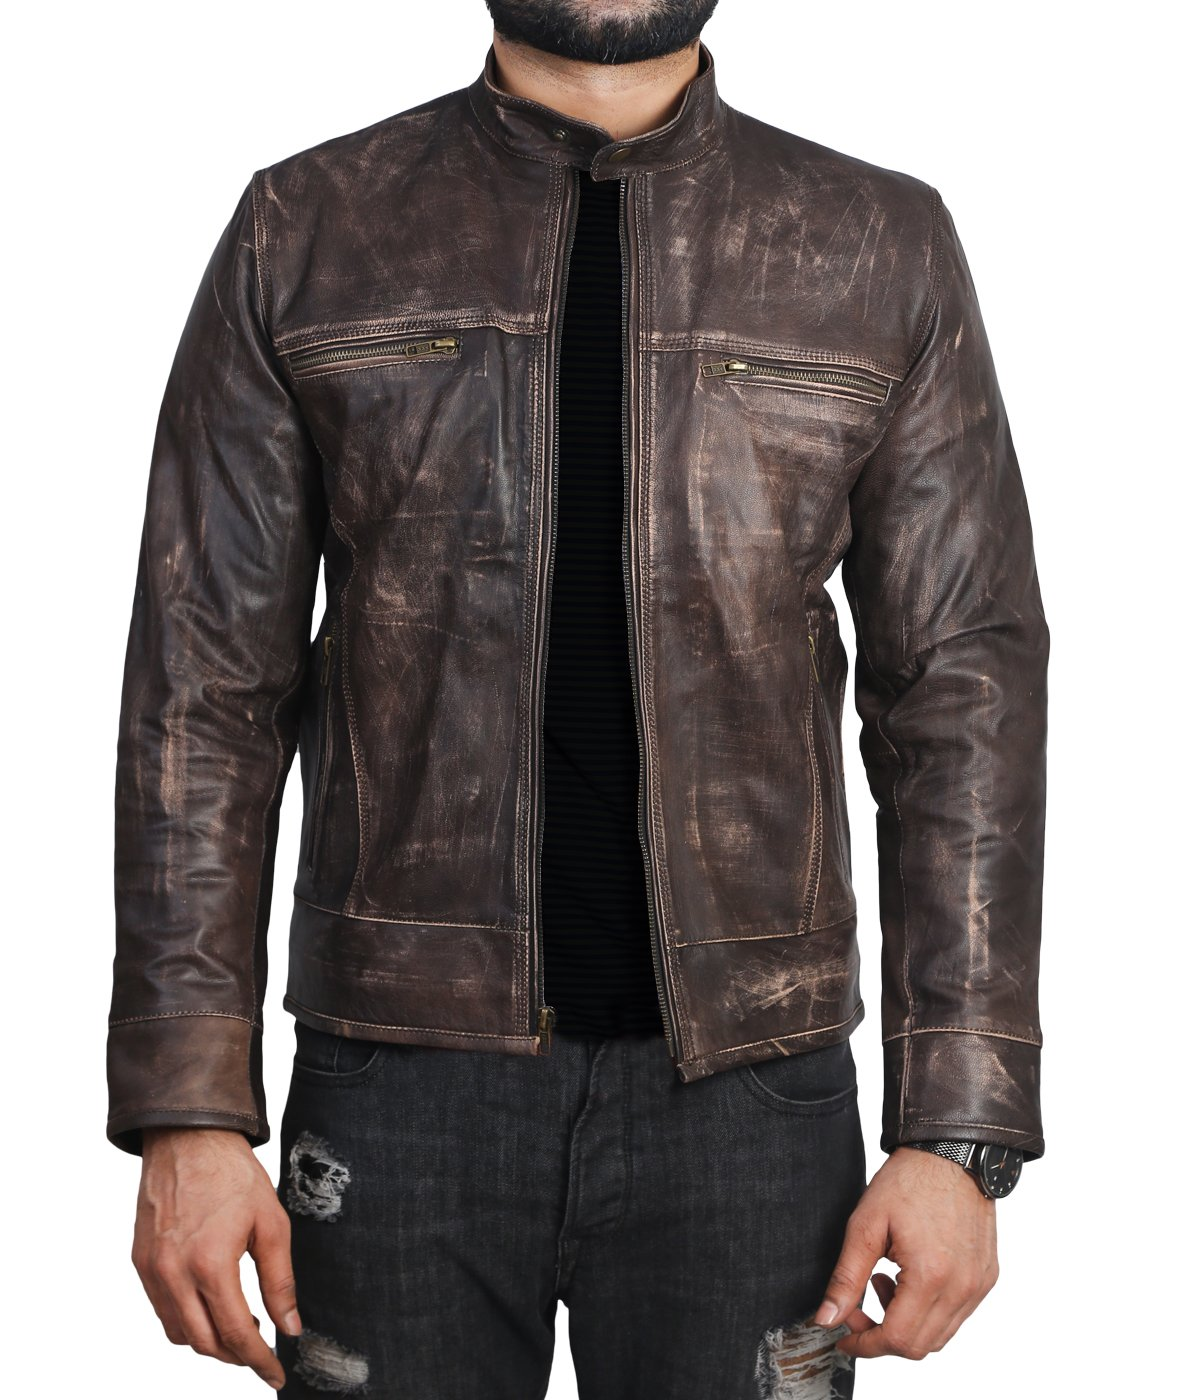 Urban Legends Men's Cafe Racer Triple Stitch Distressed Brown Wax Vintage Leather Jacket | All Sizes (3XL - Chest 54'') by Urban Legends